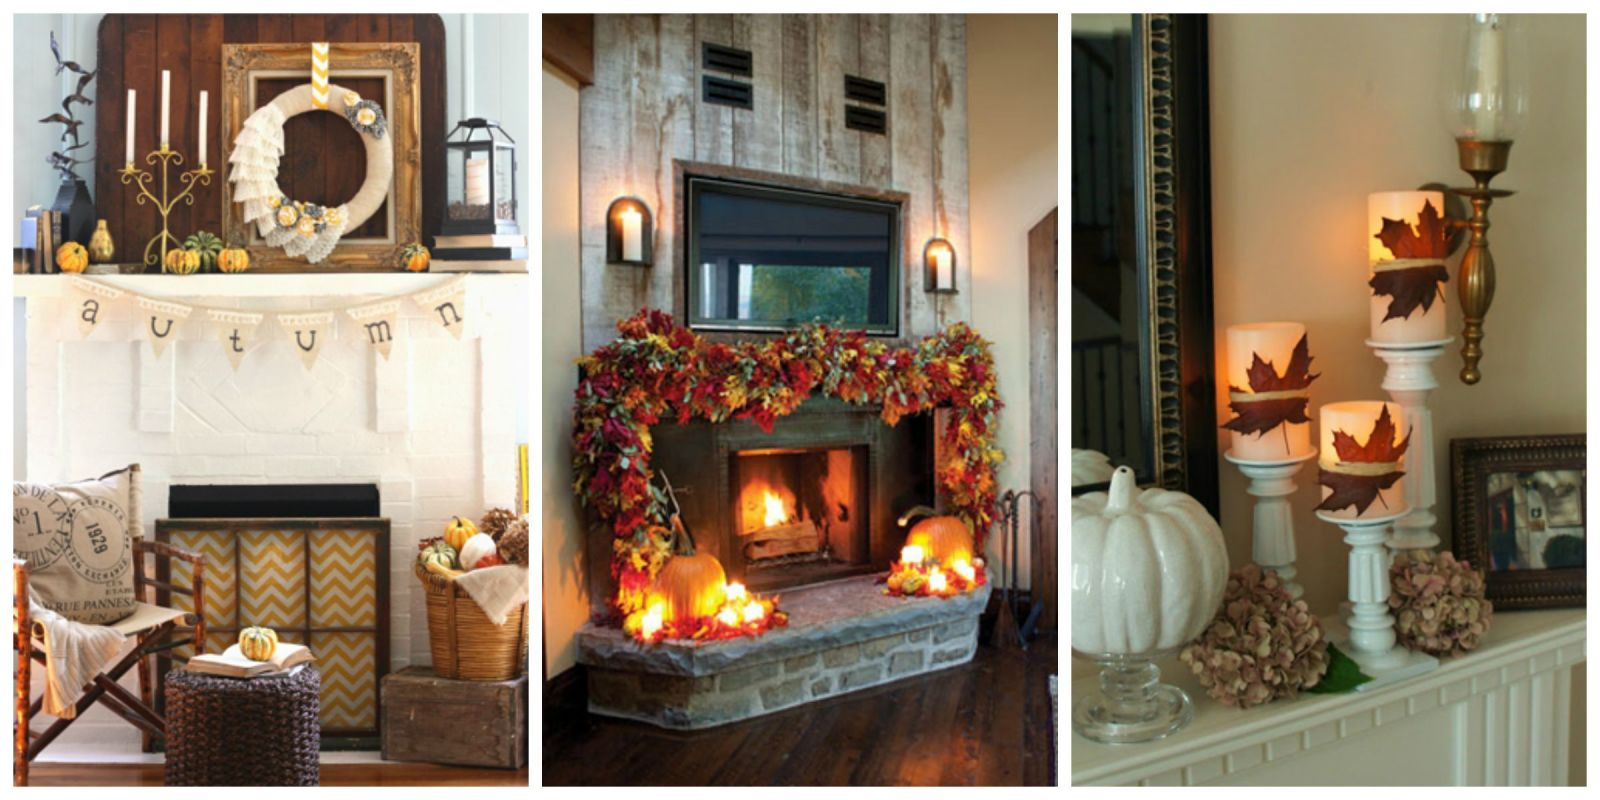 35 fall mantel decorating ideas halloween mantel decorations - Halloween Home Decor Ideas